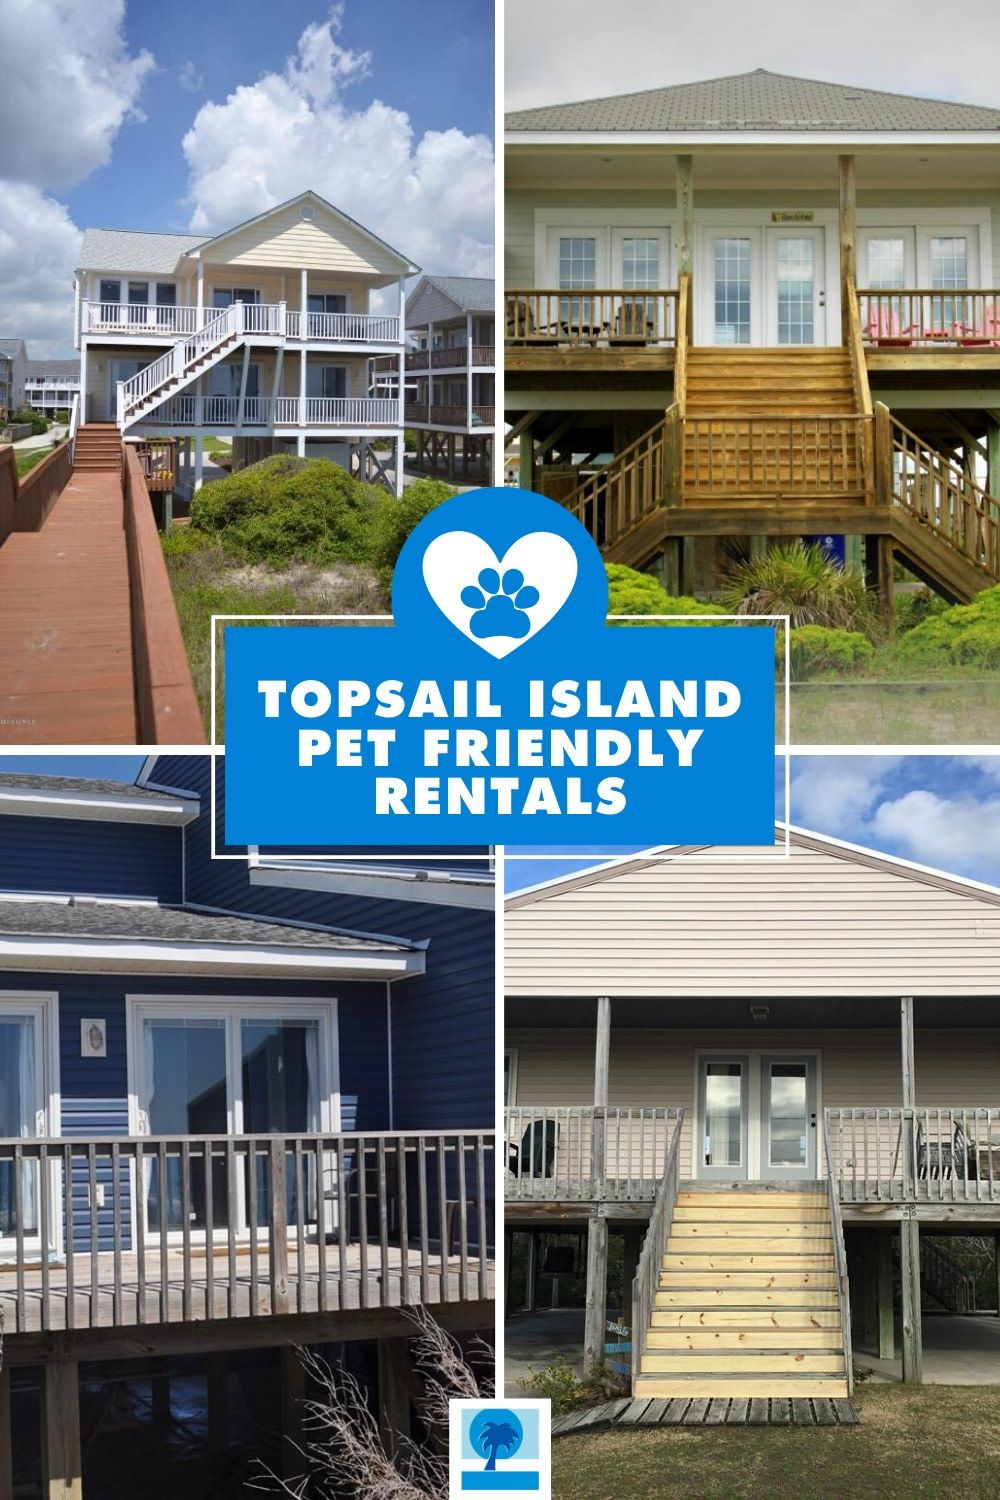 Did you know that island real estate offers several lovely